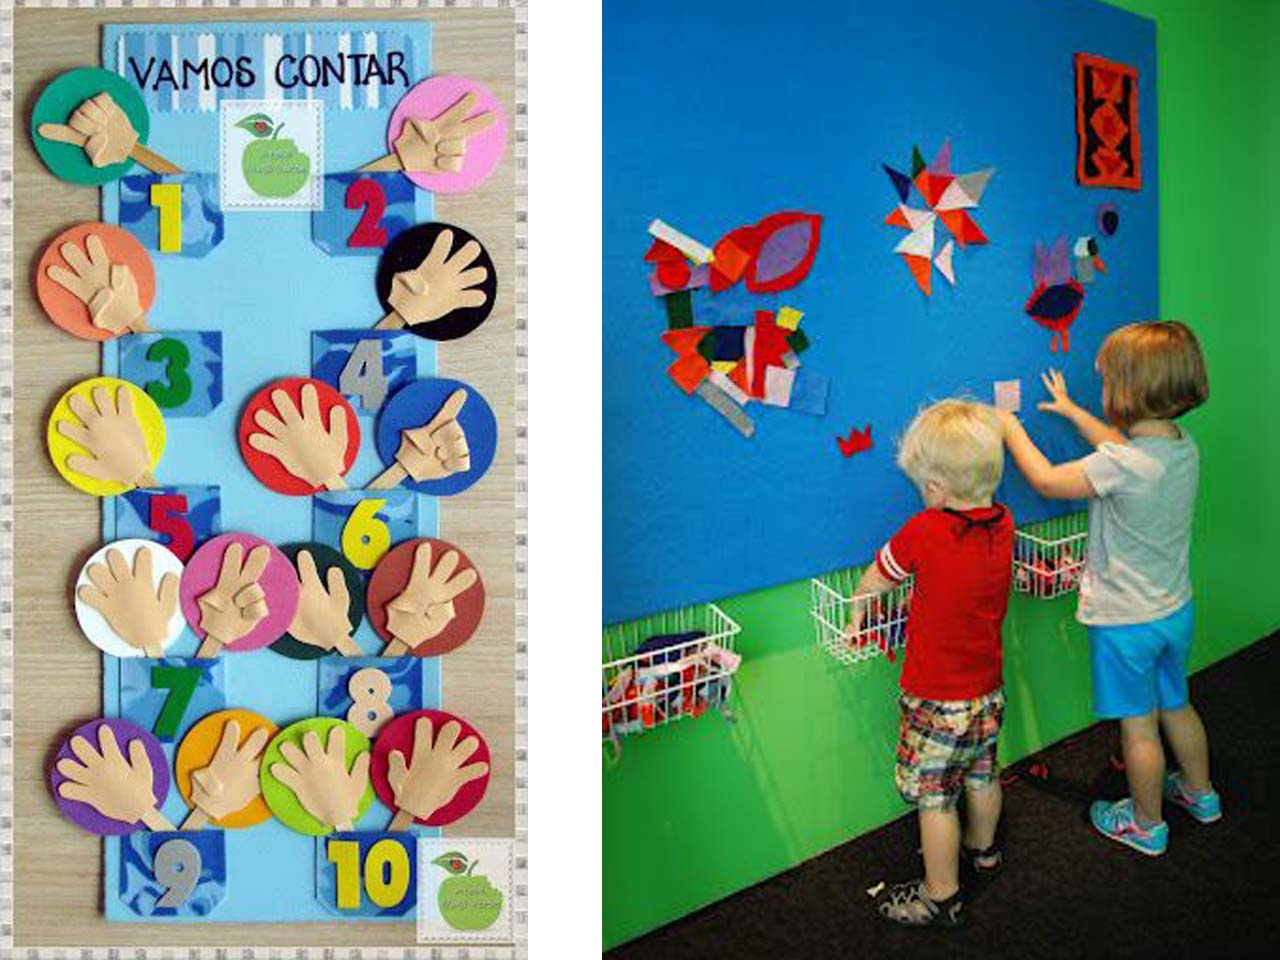 12 manualidades molonas de decoraci n infantil con fieltro - Decorar pared infantil ...